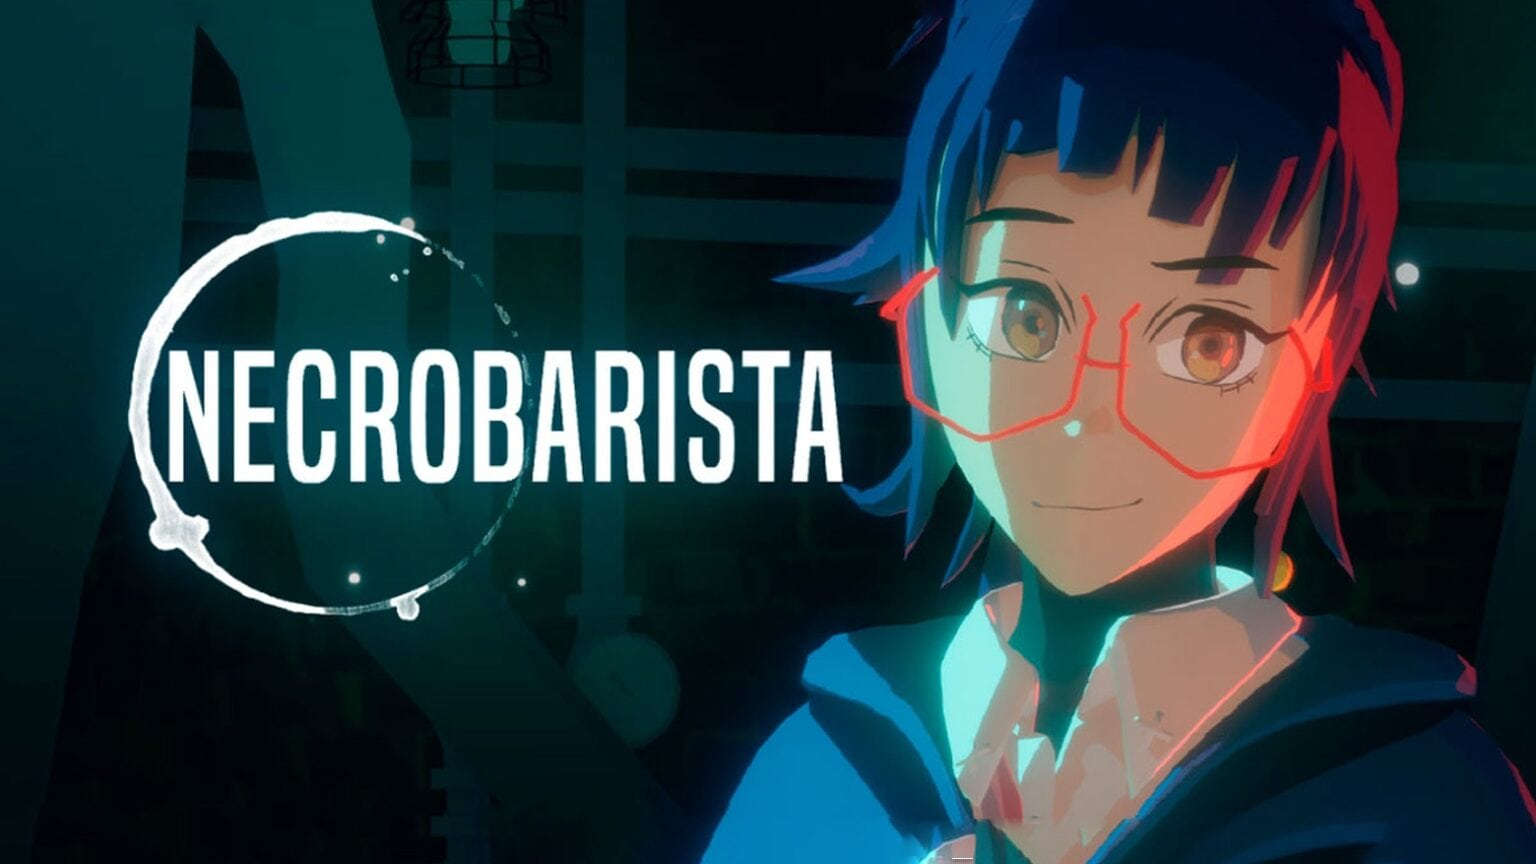 'Necrobarista' debuted Friday on the Apple Arcade gaming service.